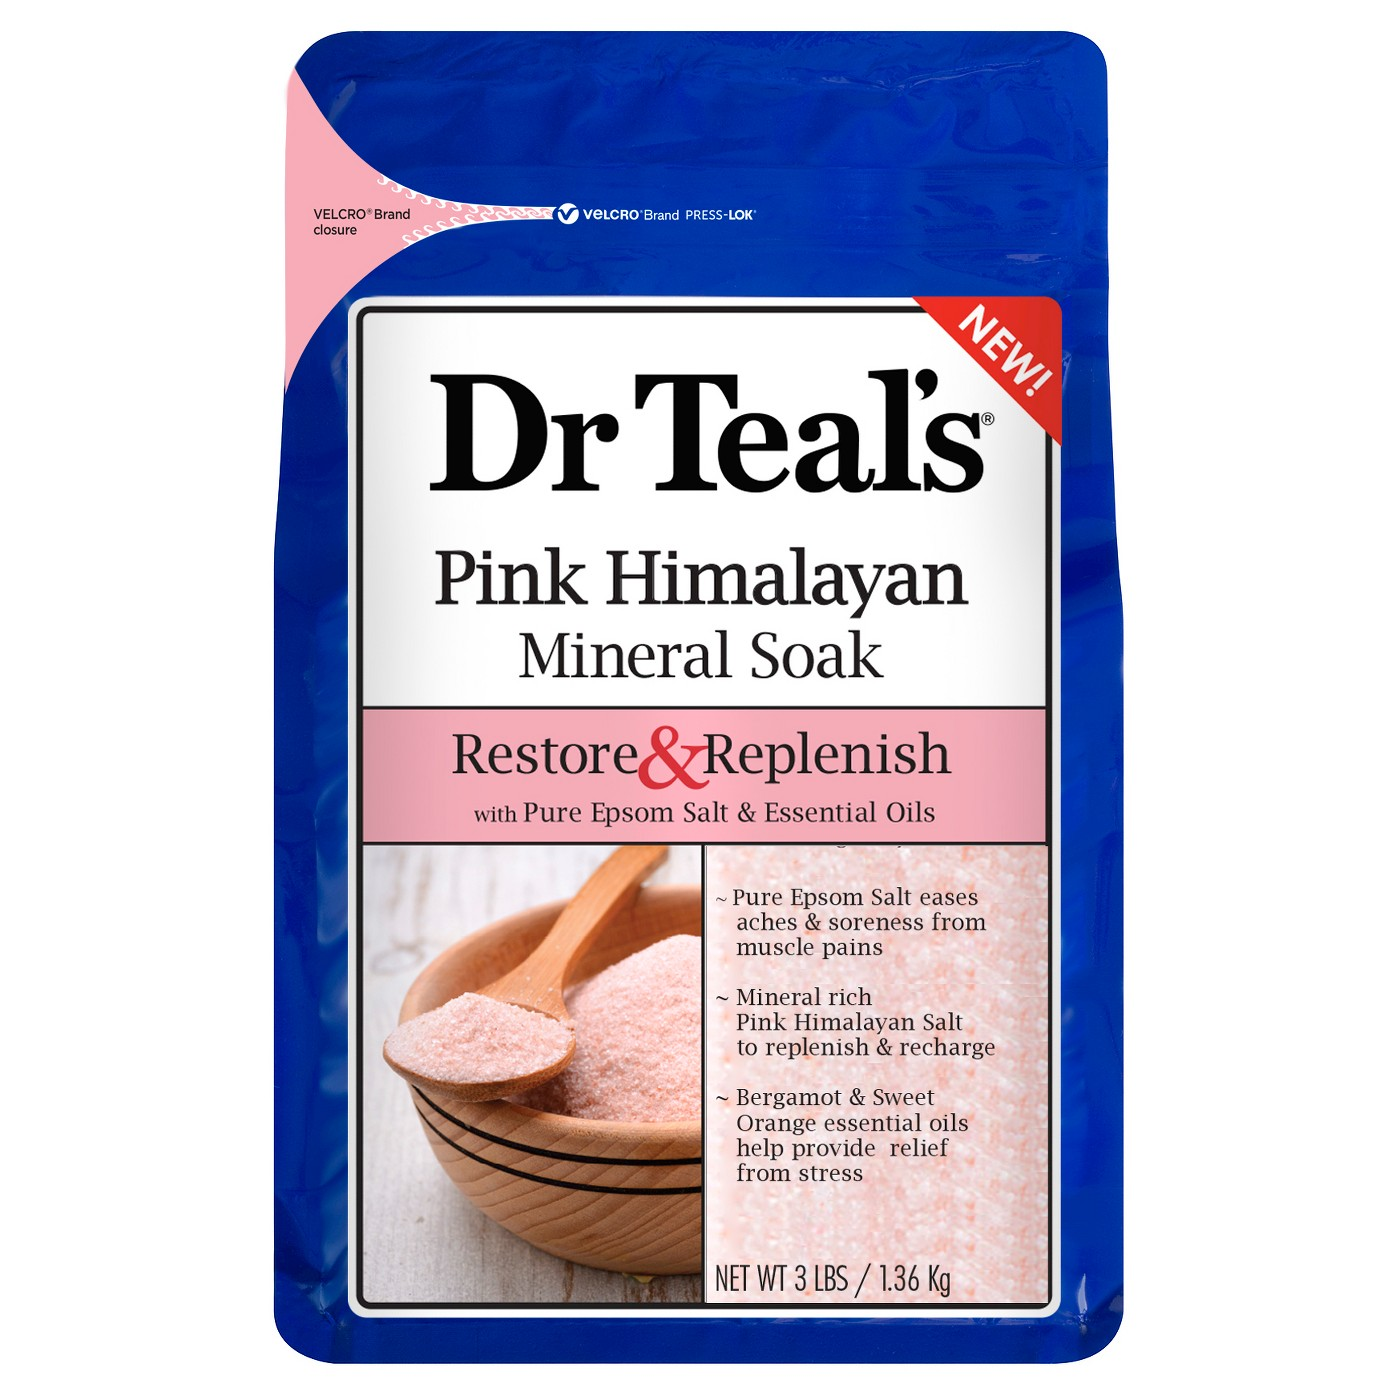 Dr Teal's® Restore & Replenish Pure Epsom Salt & Essential Oils Pink Himalayan Mineral Soak - 48oz - image 1 of 1